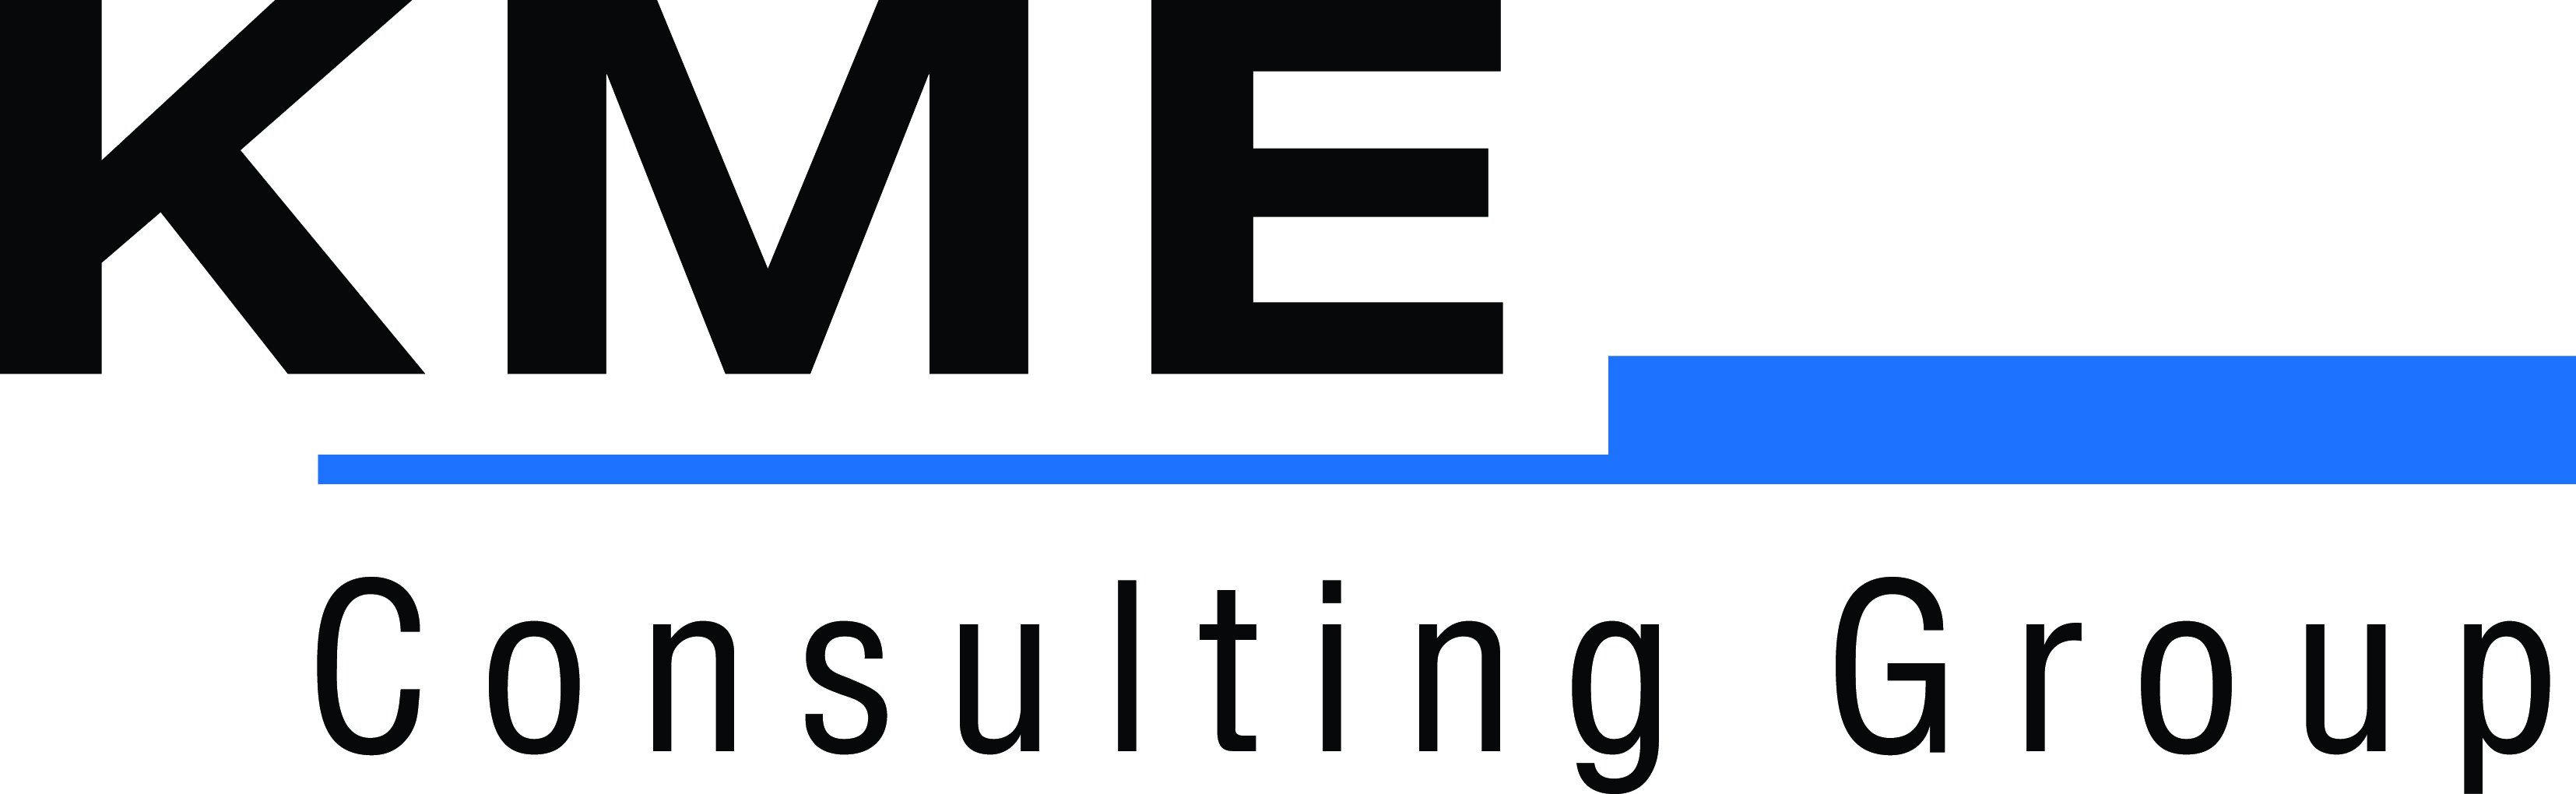 KME Consulting - Dr. Kresse International Law Firm